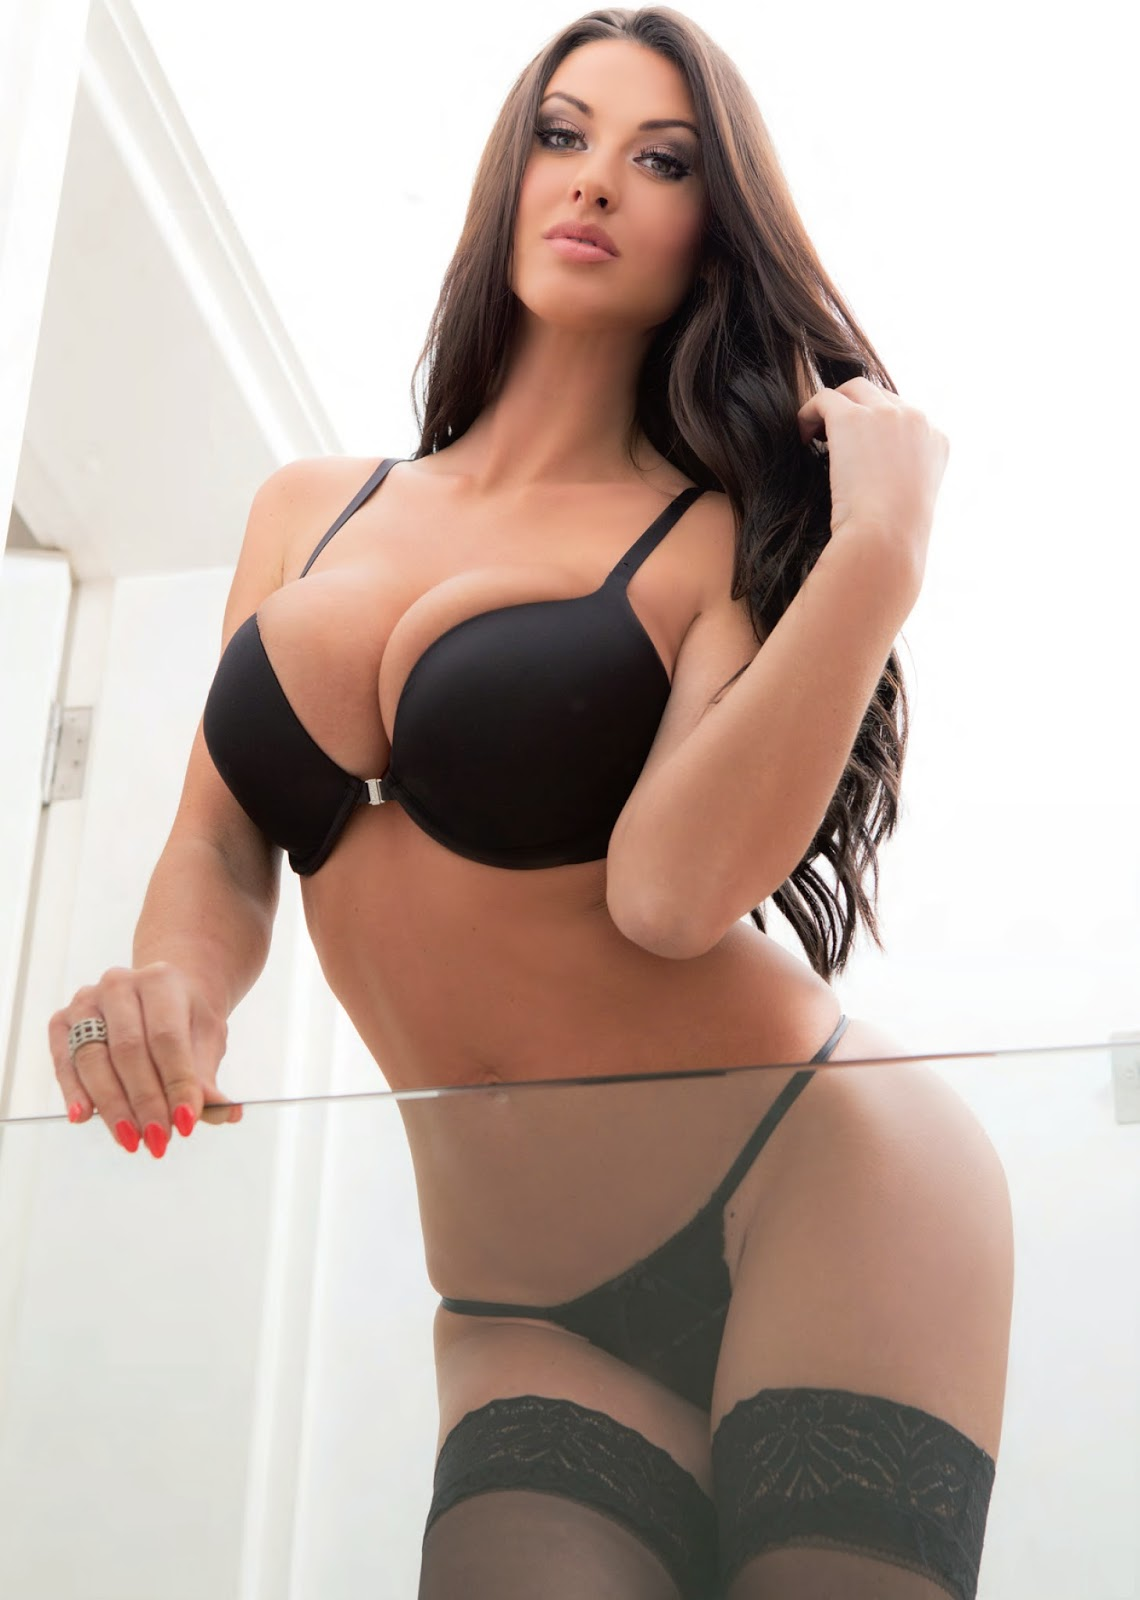 alice goodwin sex